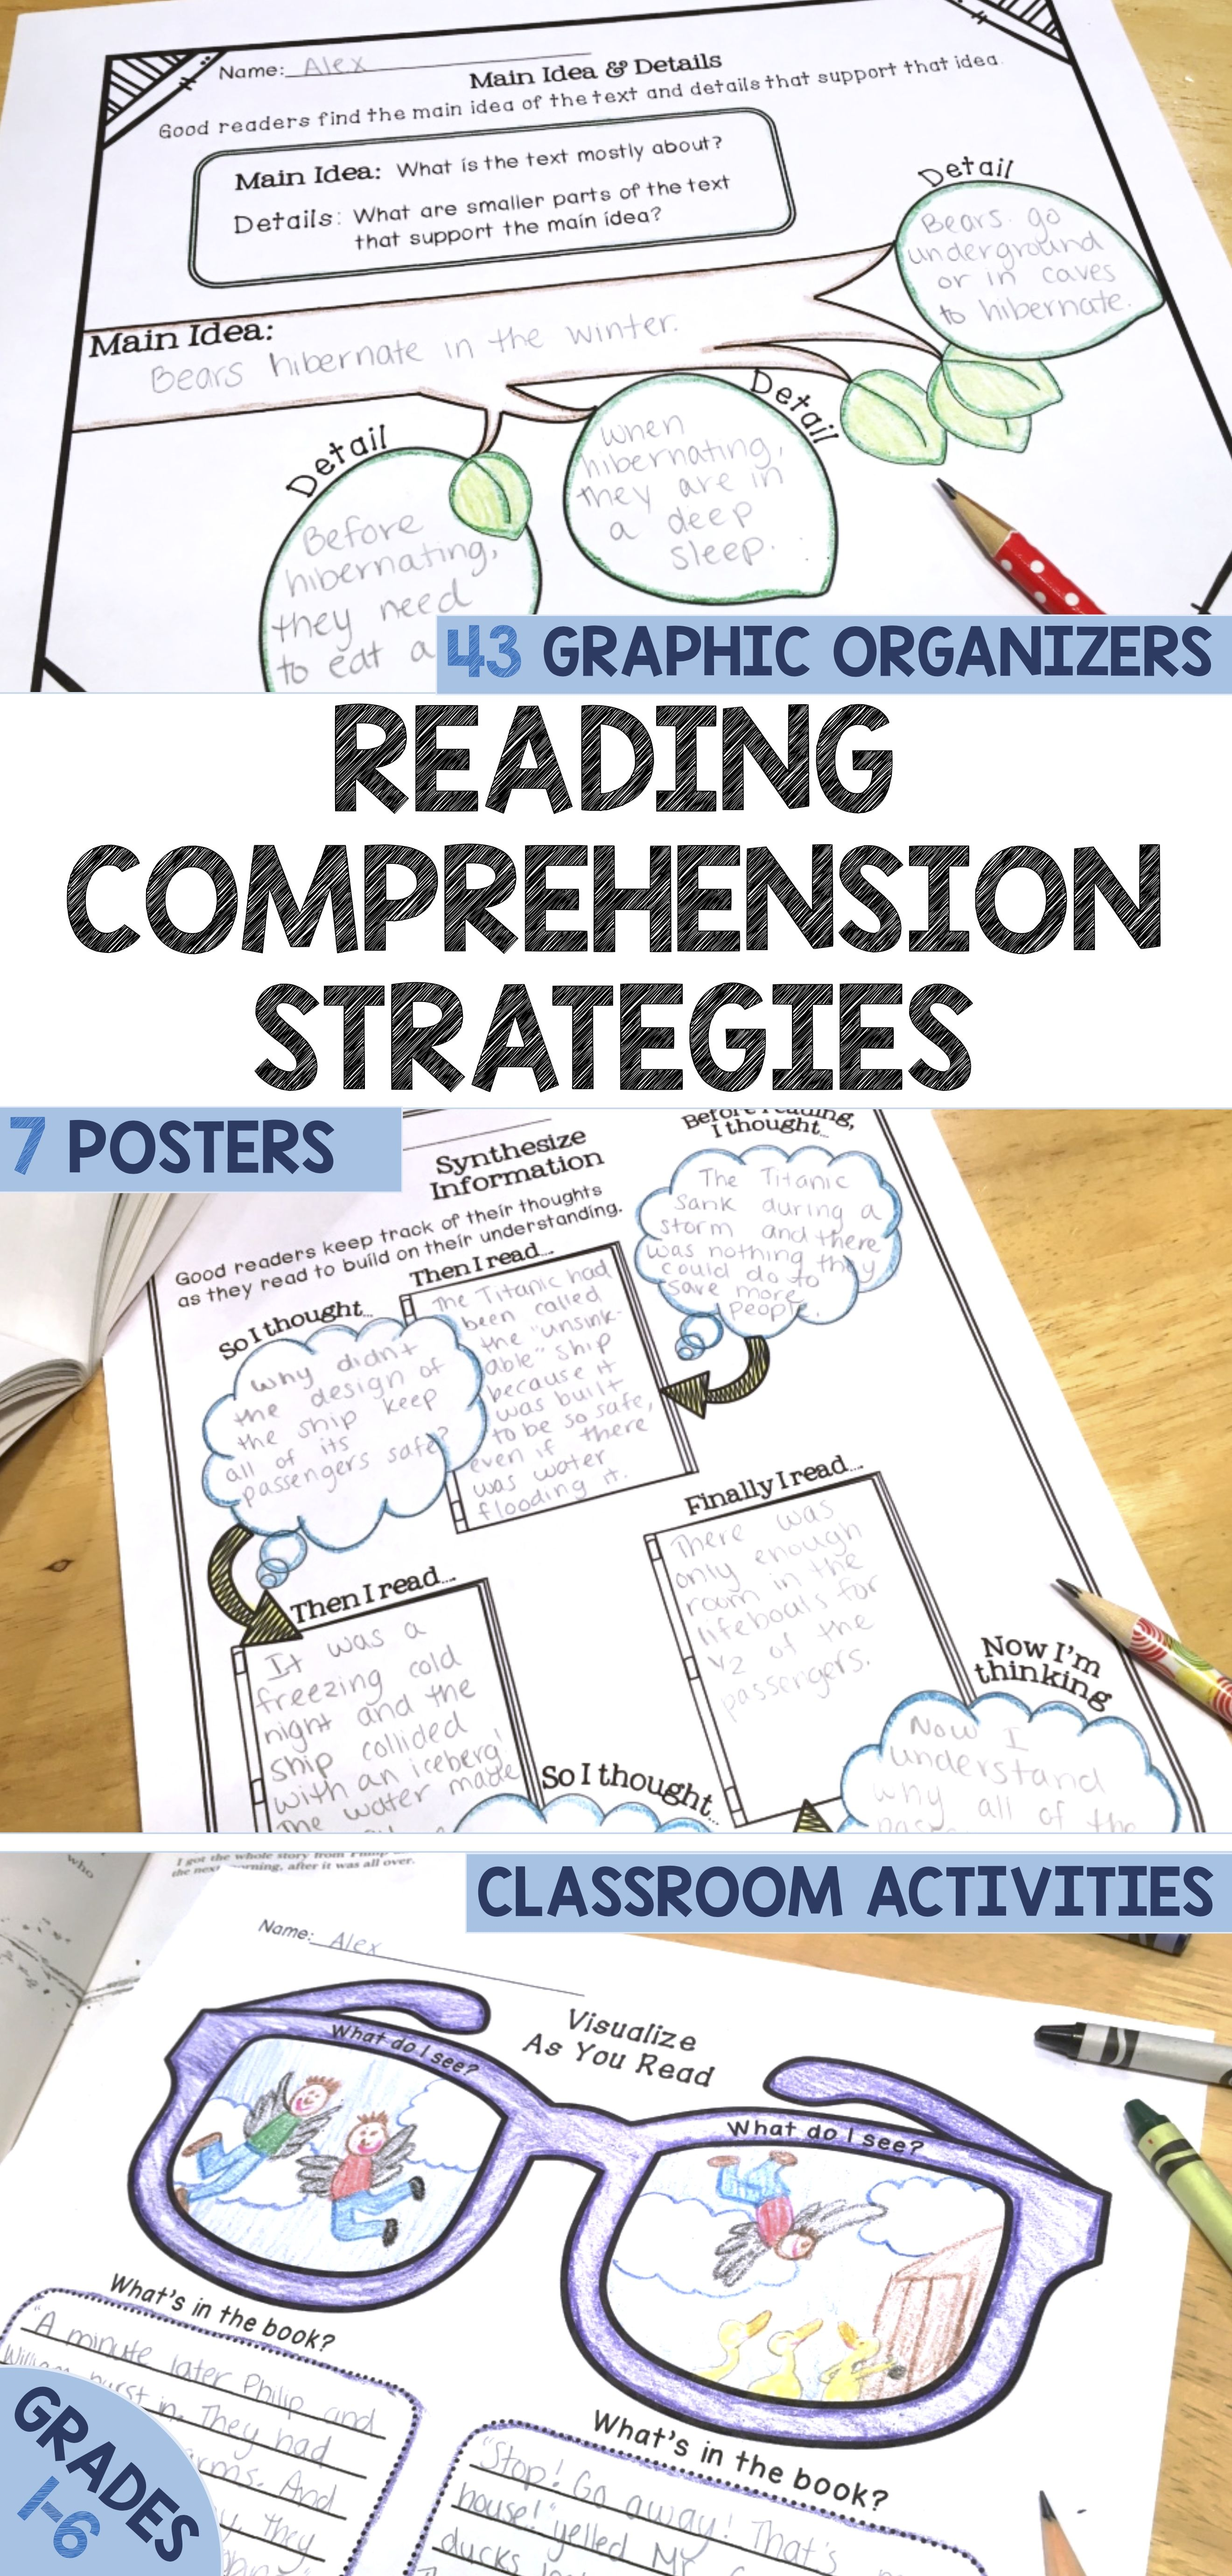 Grades 1 6 Reading Comprehension Graphic Organizers Researched Based From The